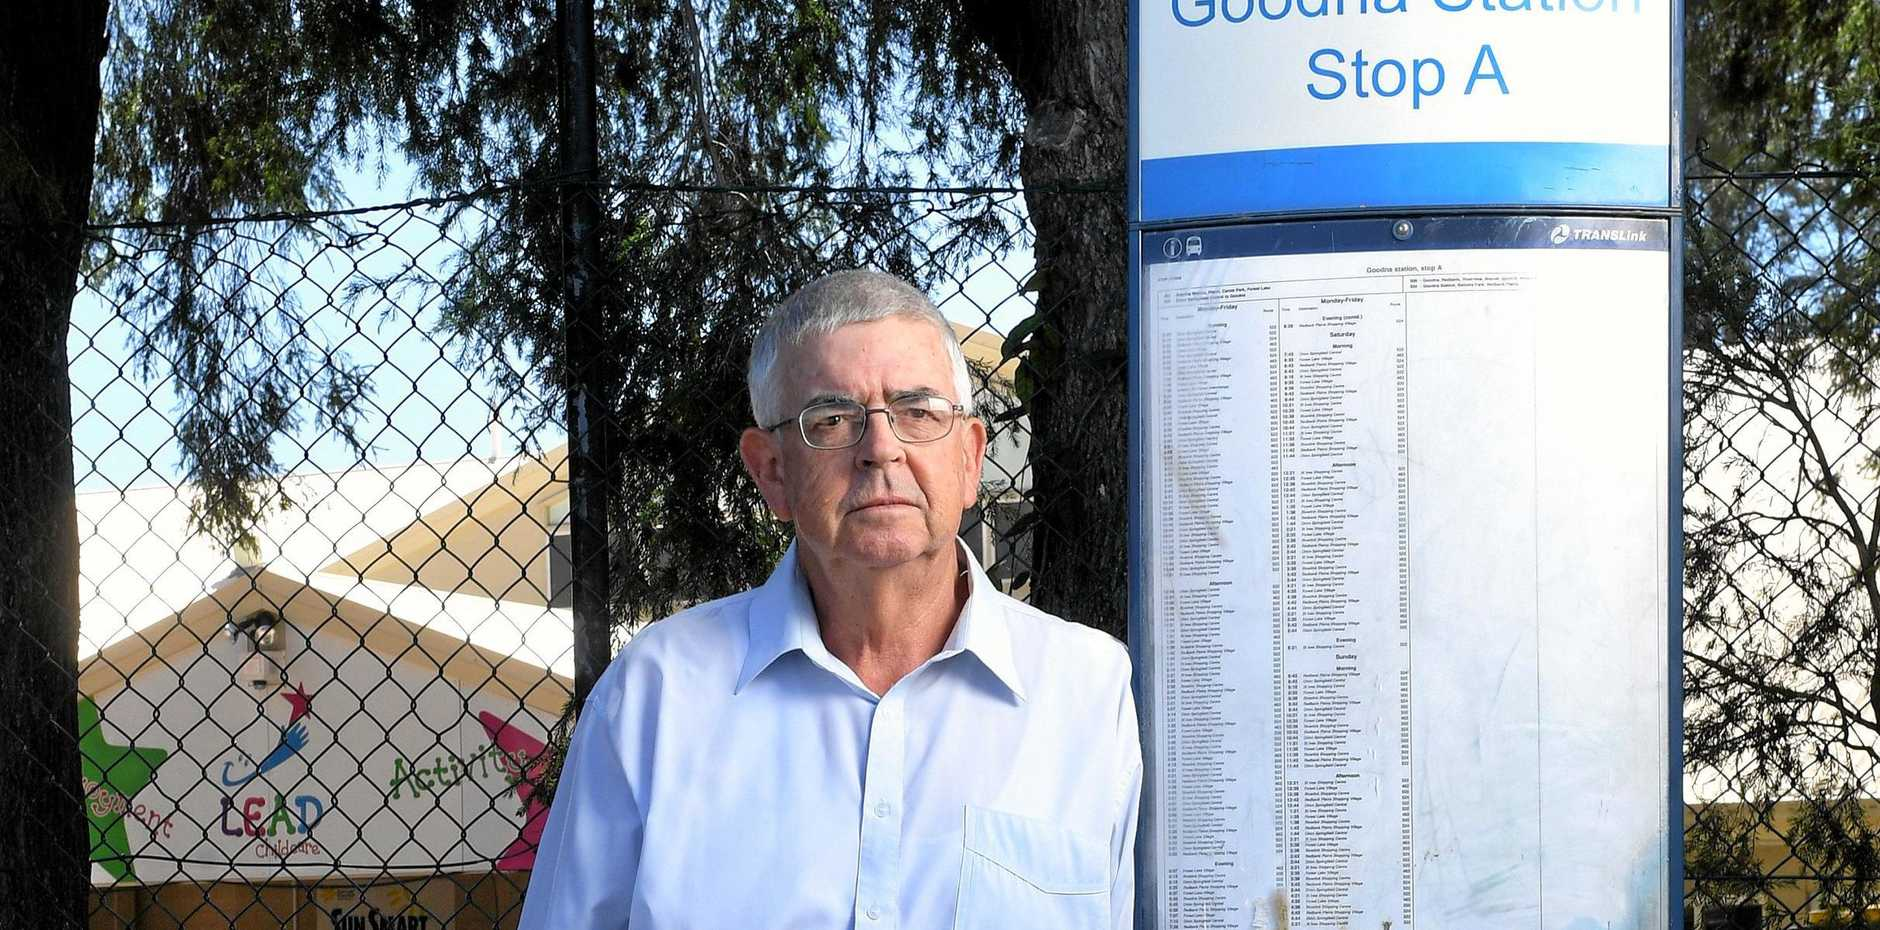 Robert Dow welcomes service restorations but want the rail fail acknowledged.